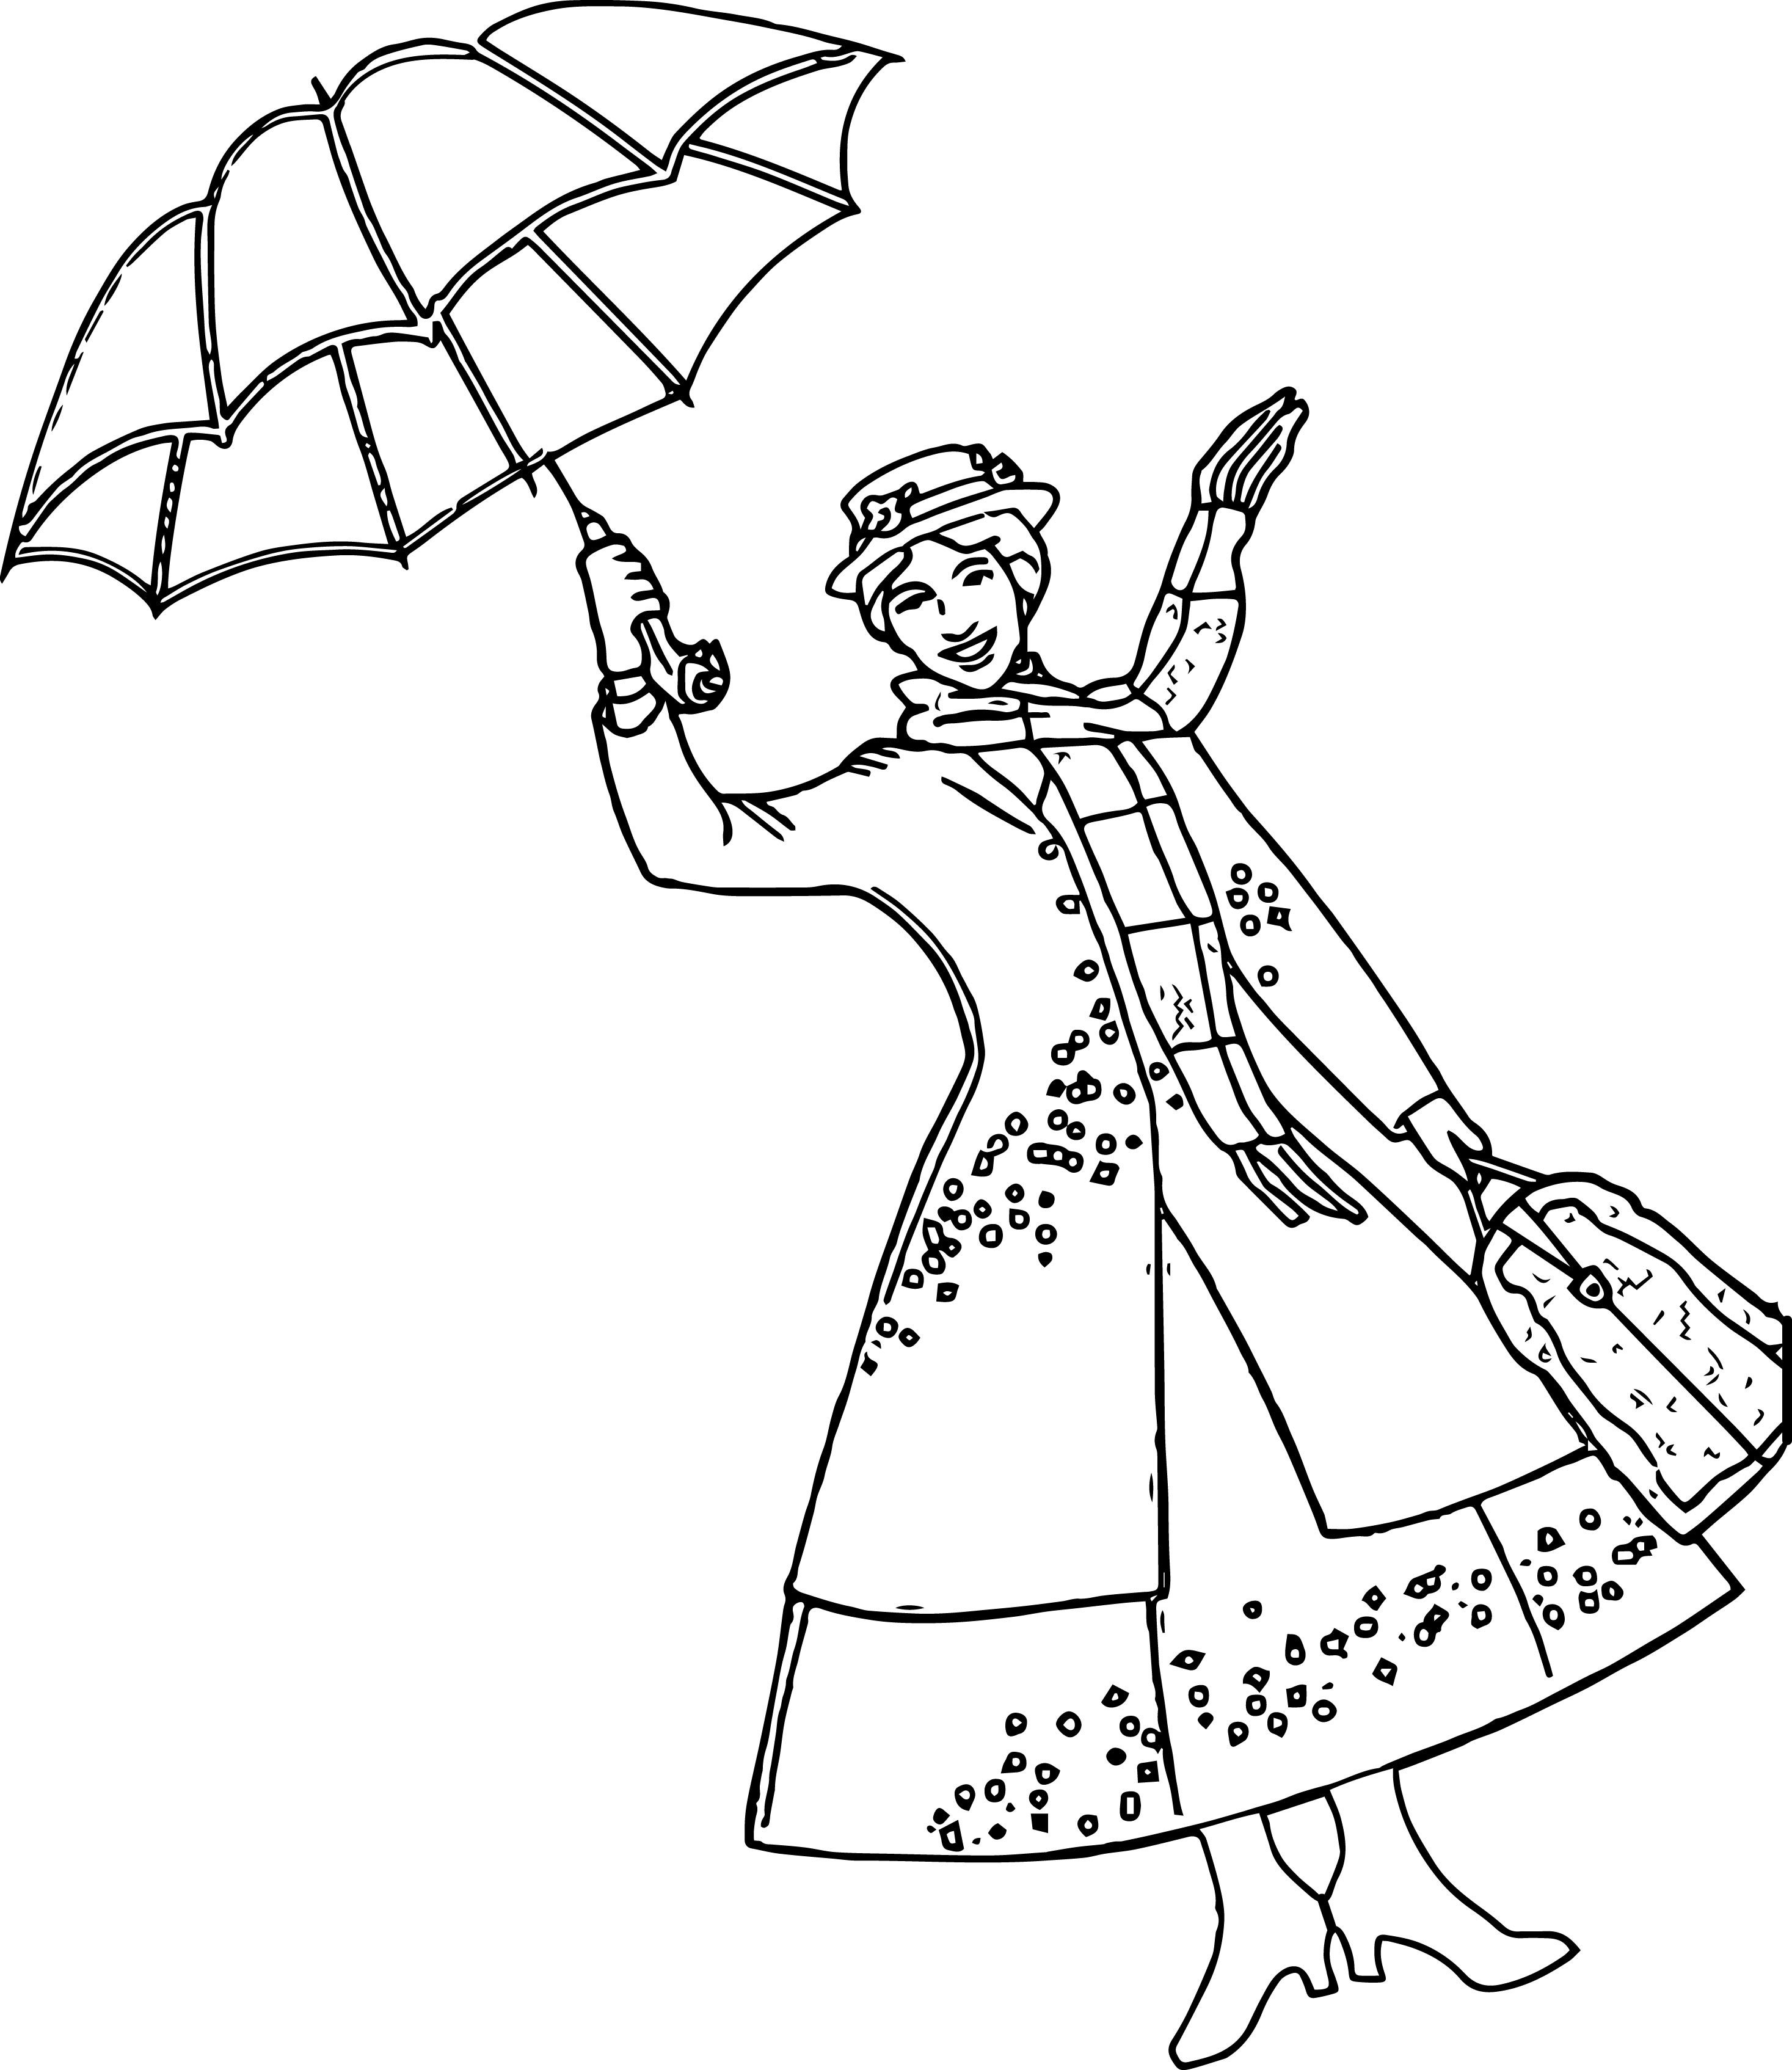 Mary-Poppins-Girl-Umbrella-Coloring-Page.jpg (2934×3389) | Раскраска ...